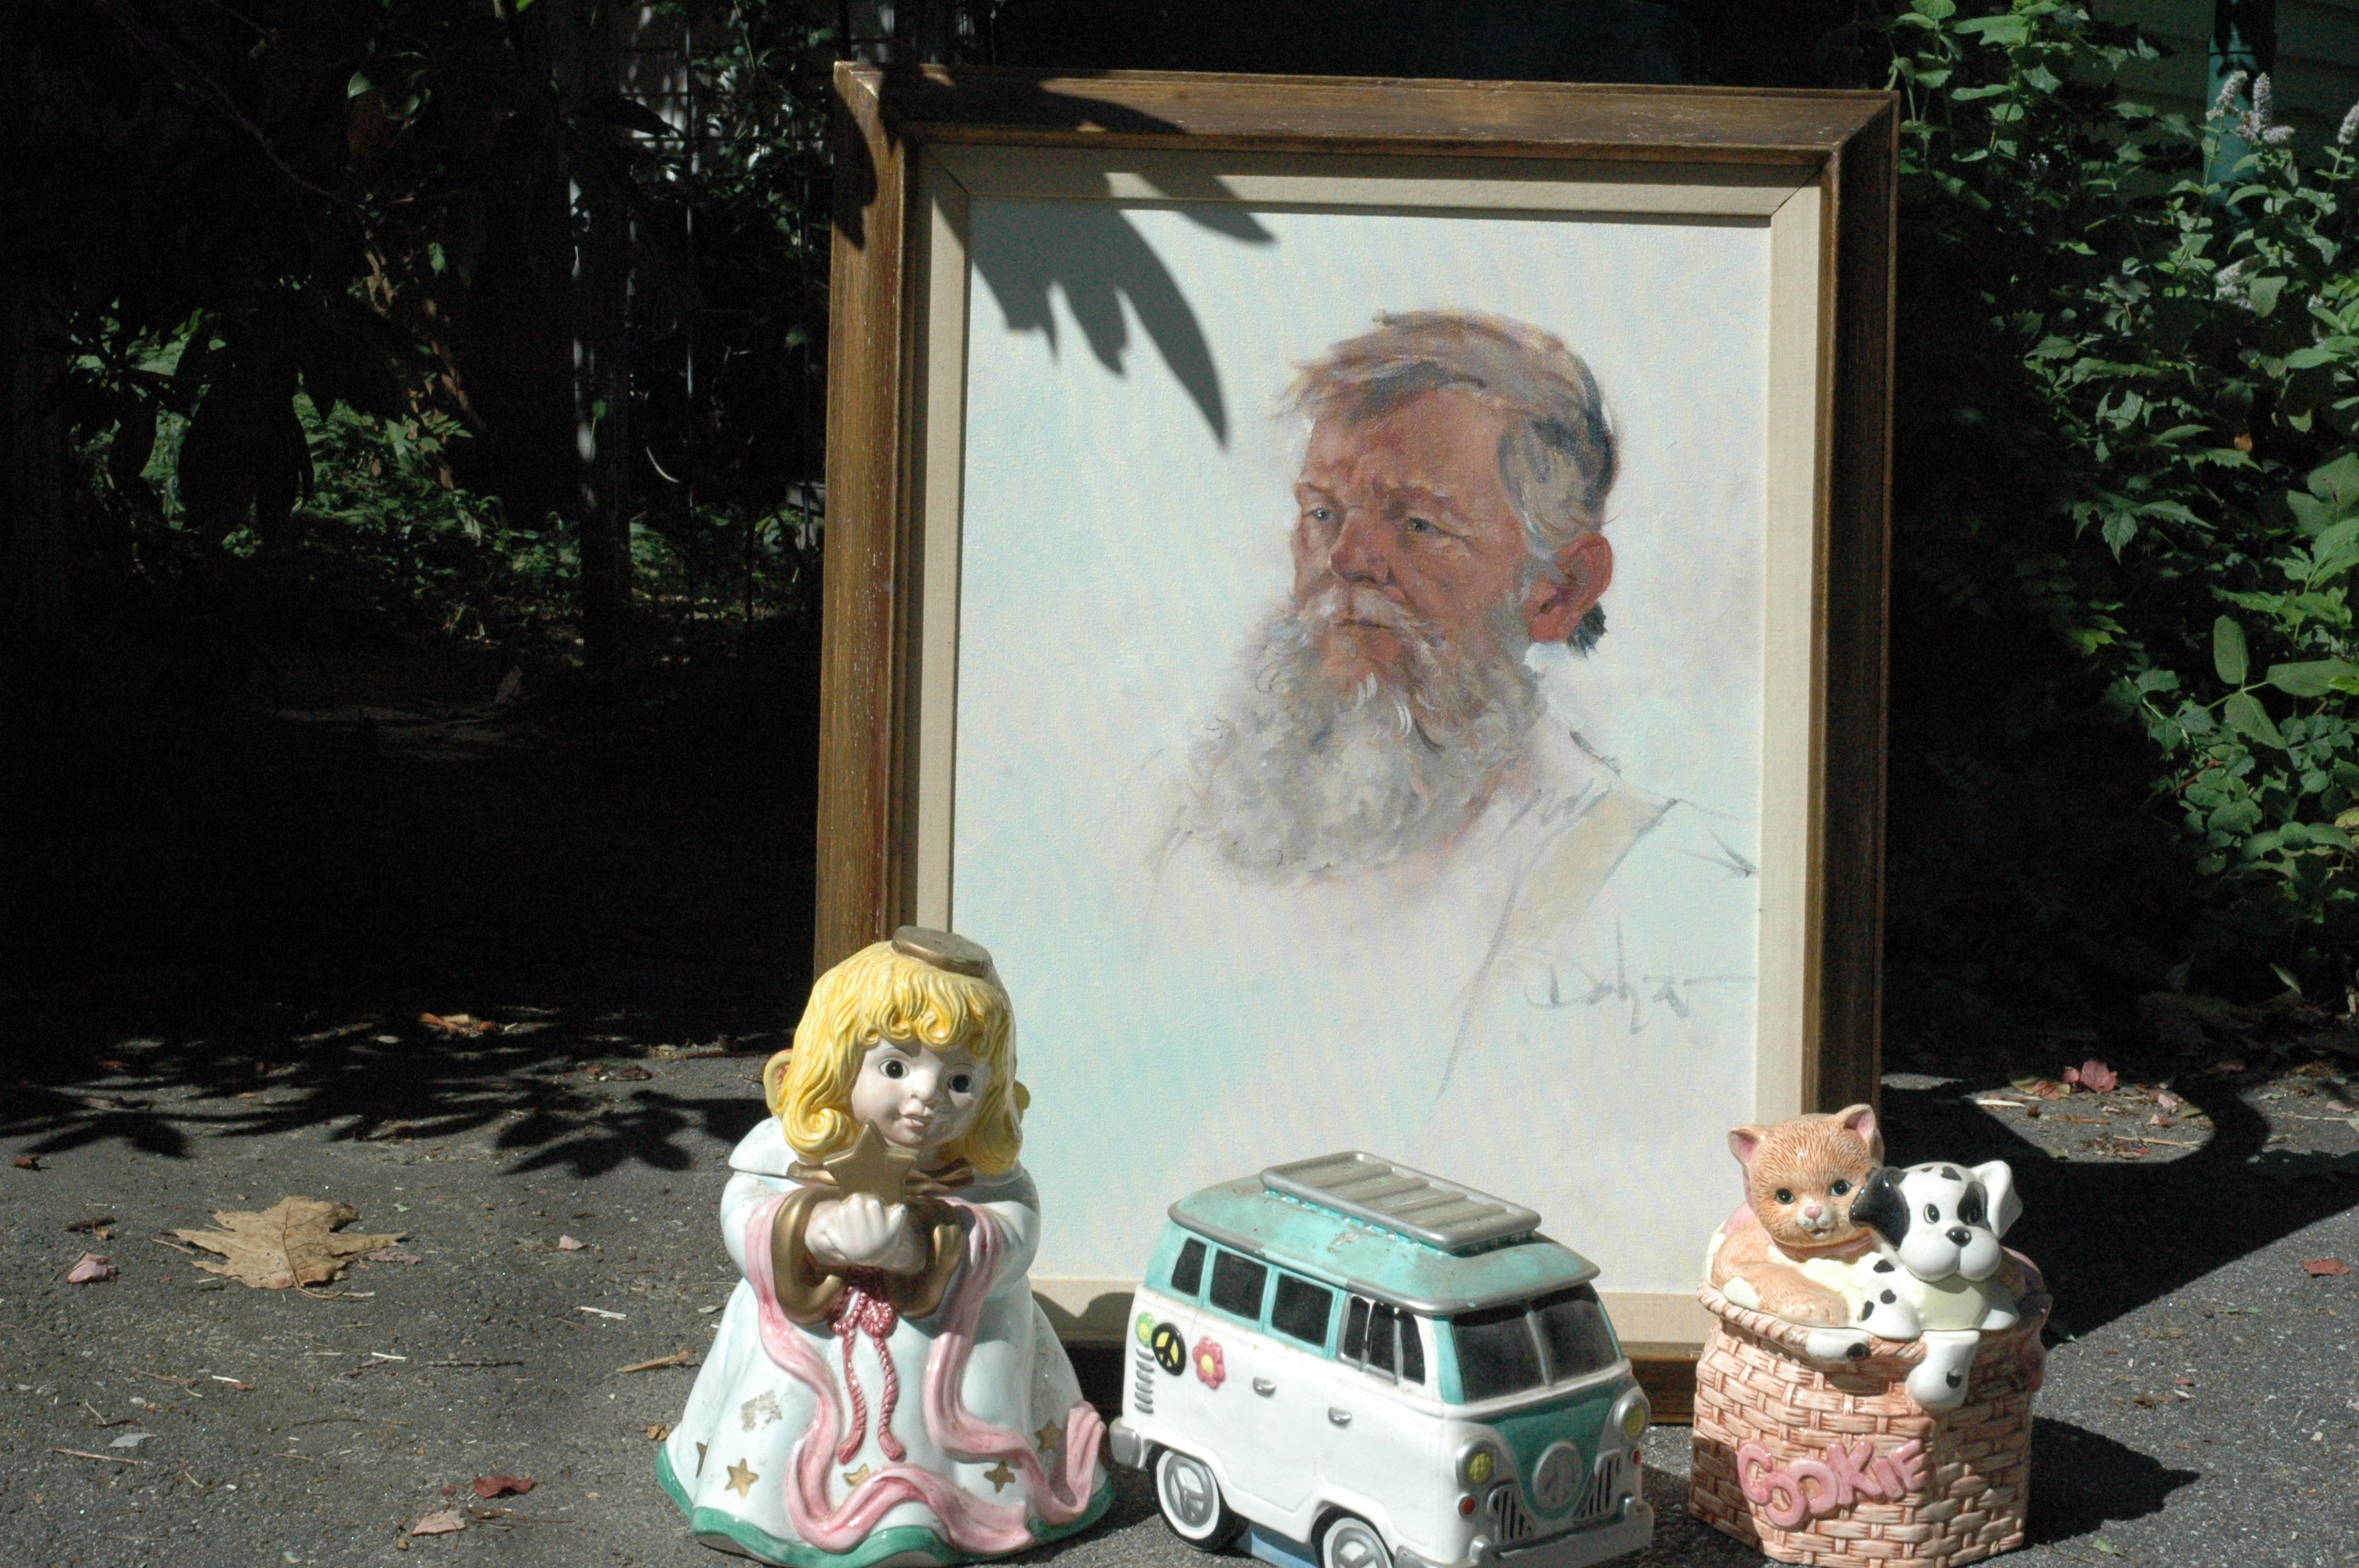 A portrait of the late John Desmond by Biddeford artist Robert Dohar and a few pieces from his collection of piggy banks and cookie jars are shown. LIZ GOTTHELF/Journal Tribune